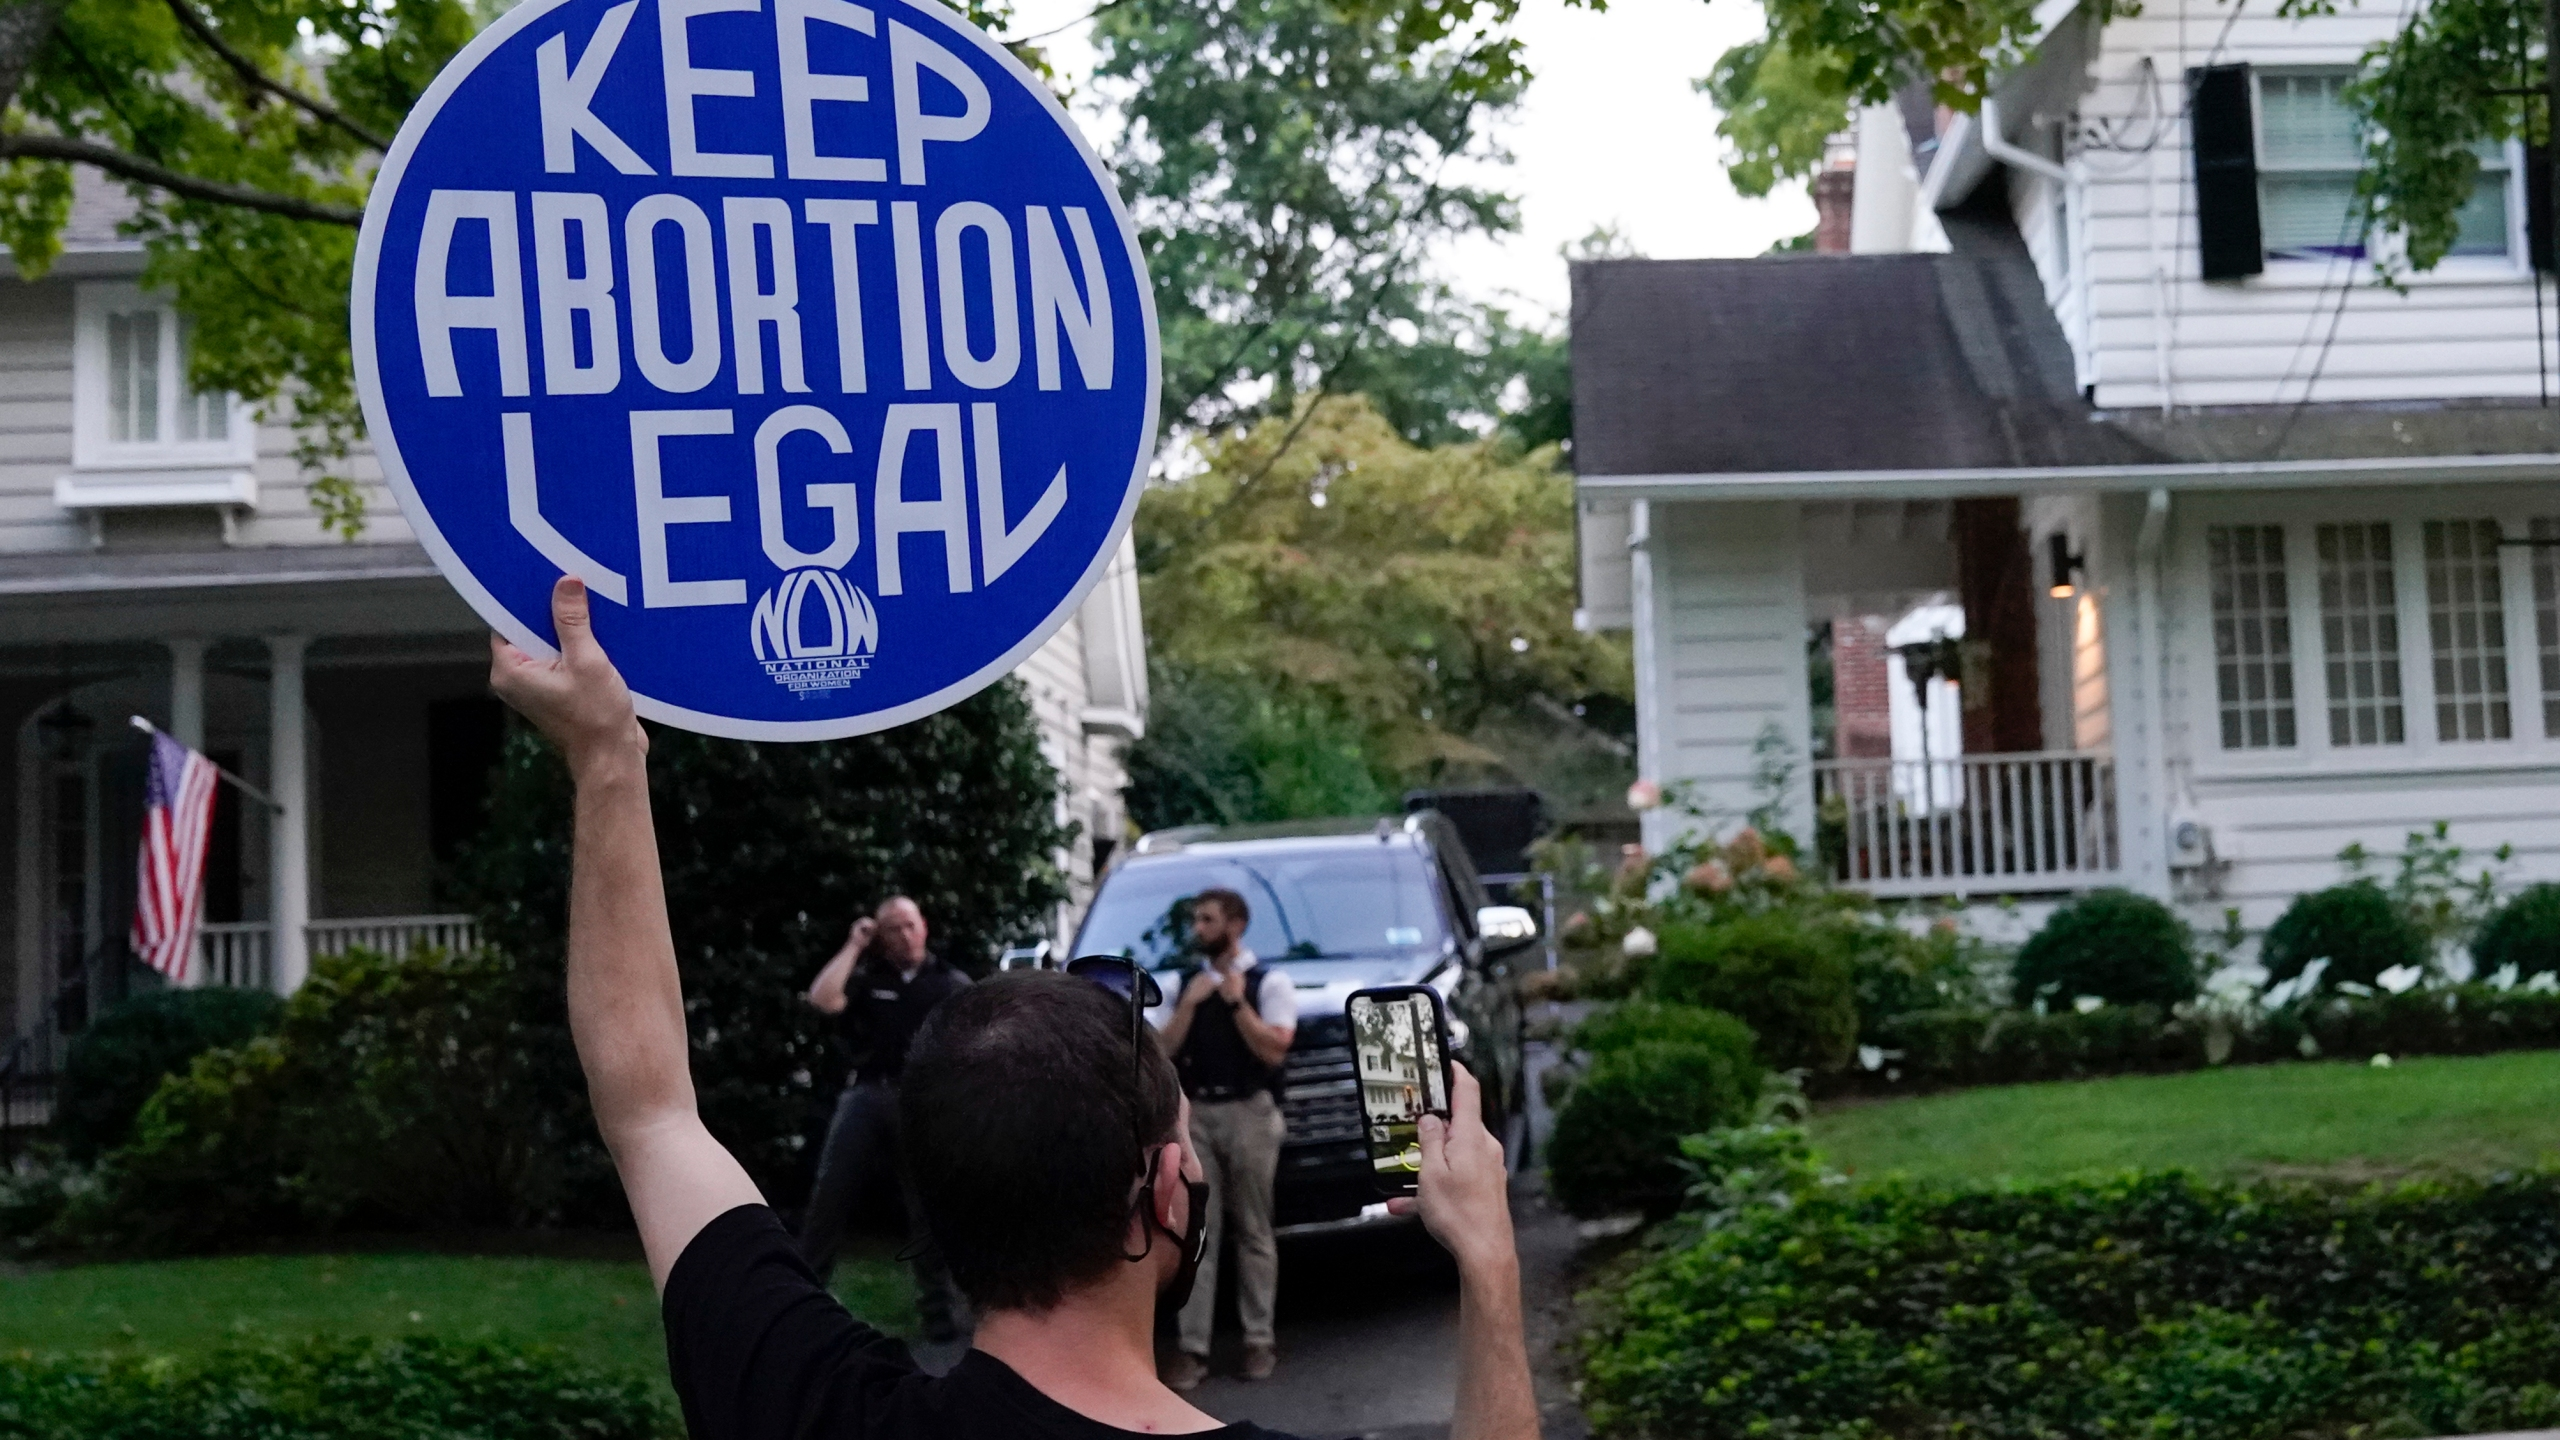 A protester stands outside the home of Supreme Court Justice Brett Kavanaugh, Monday, Sept. 13, 2021, in Chevy Chase, Md.(AP Photo/Patrick Semansky)